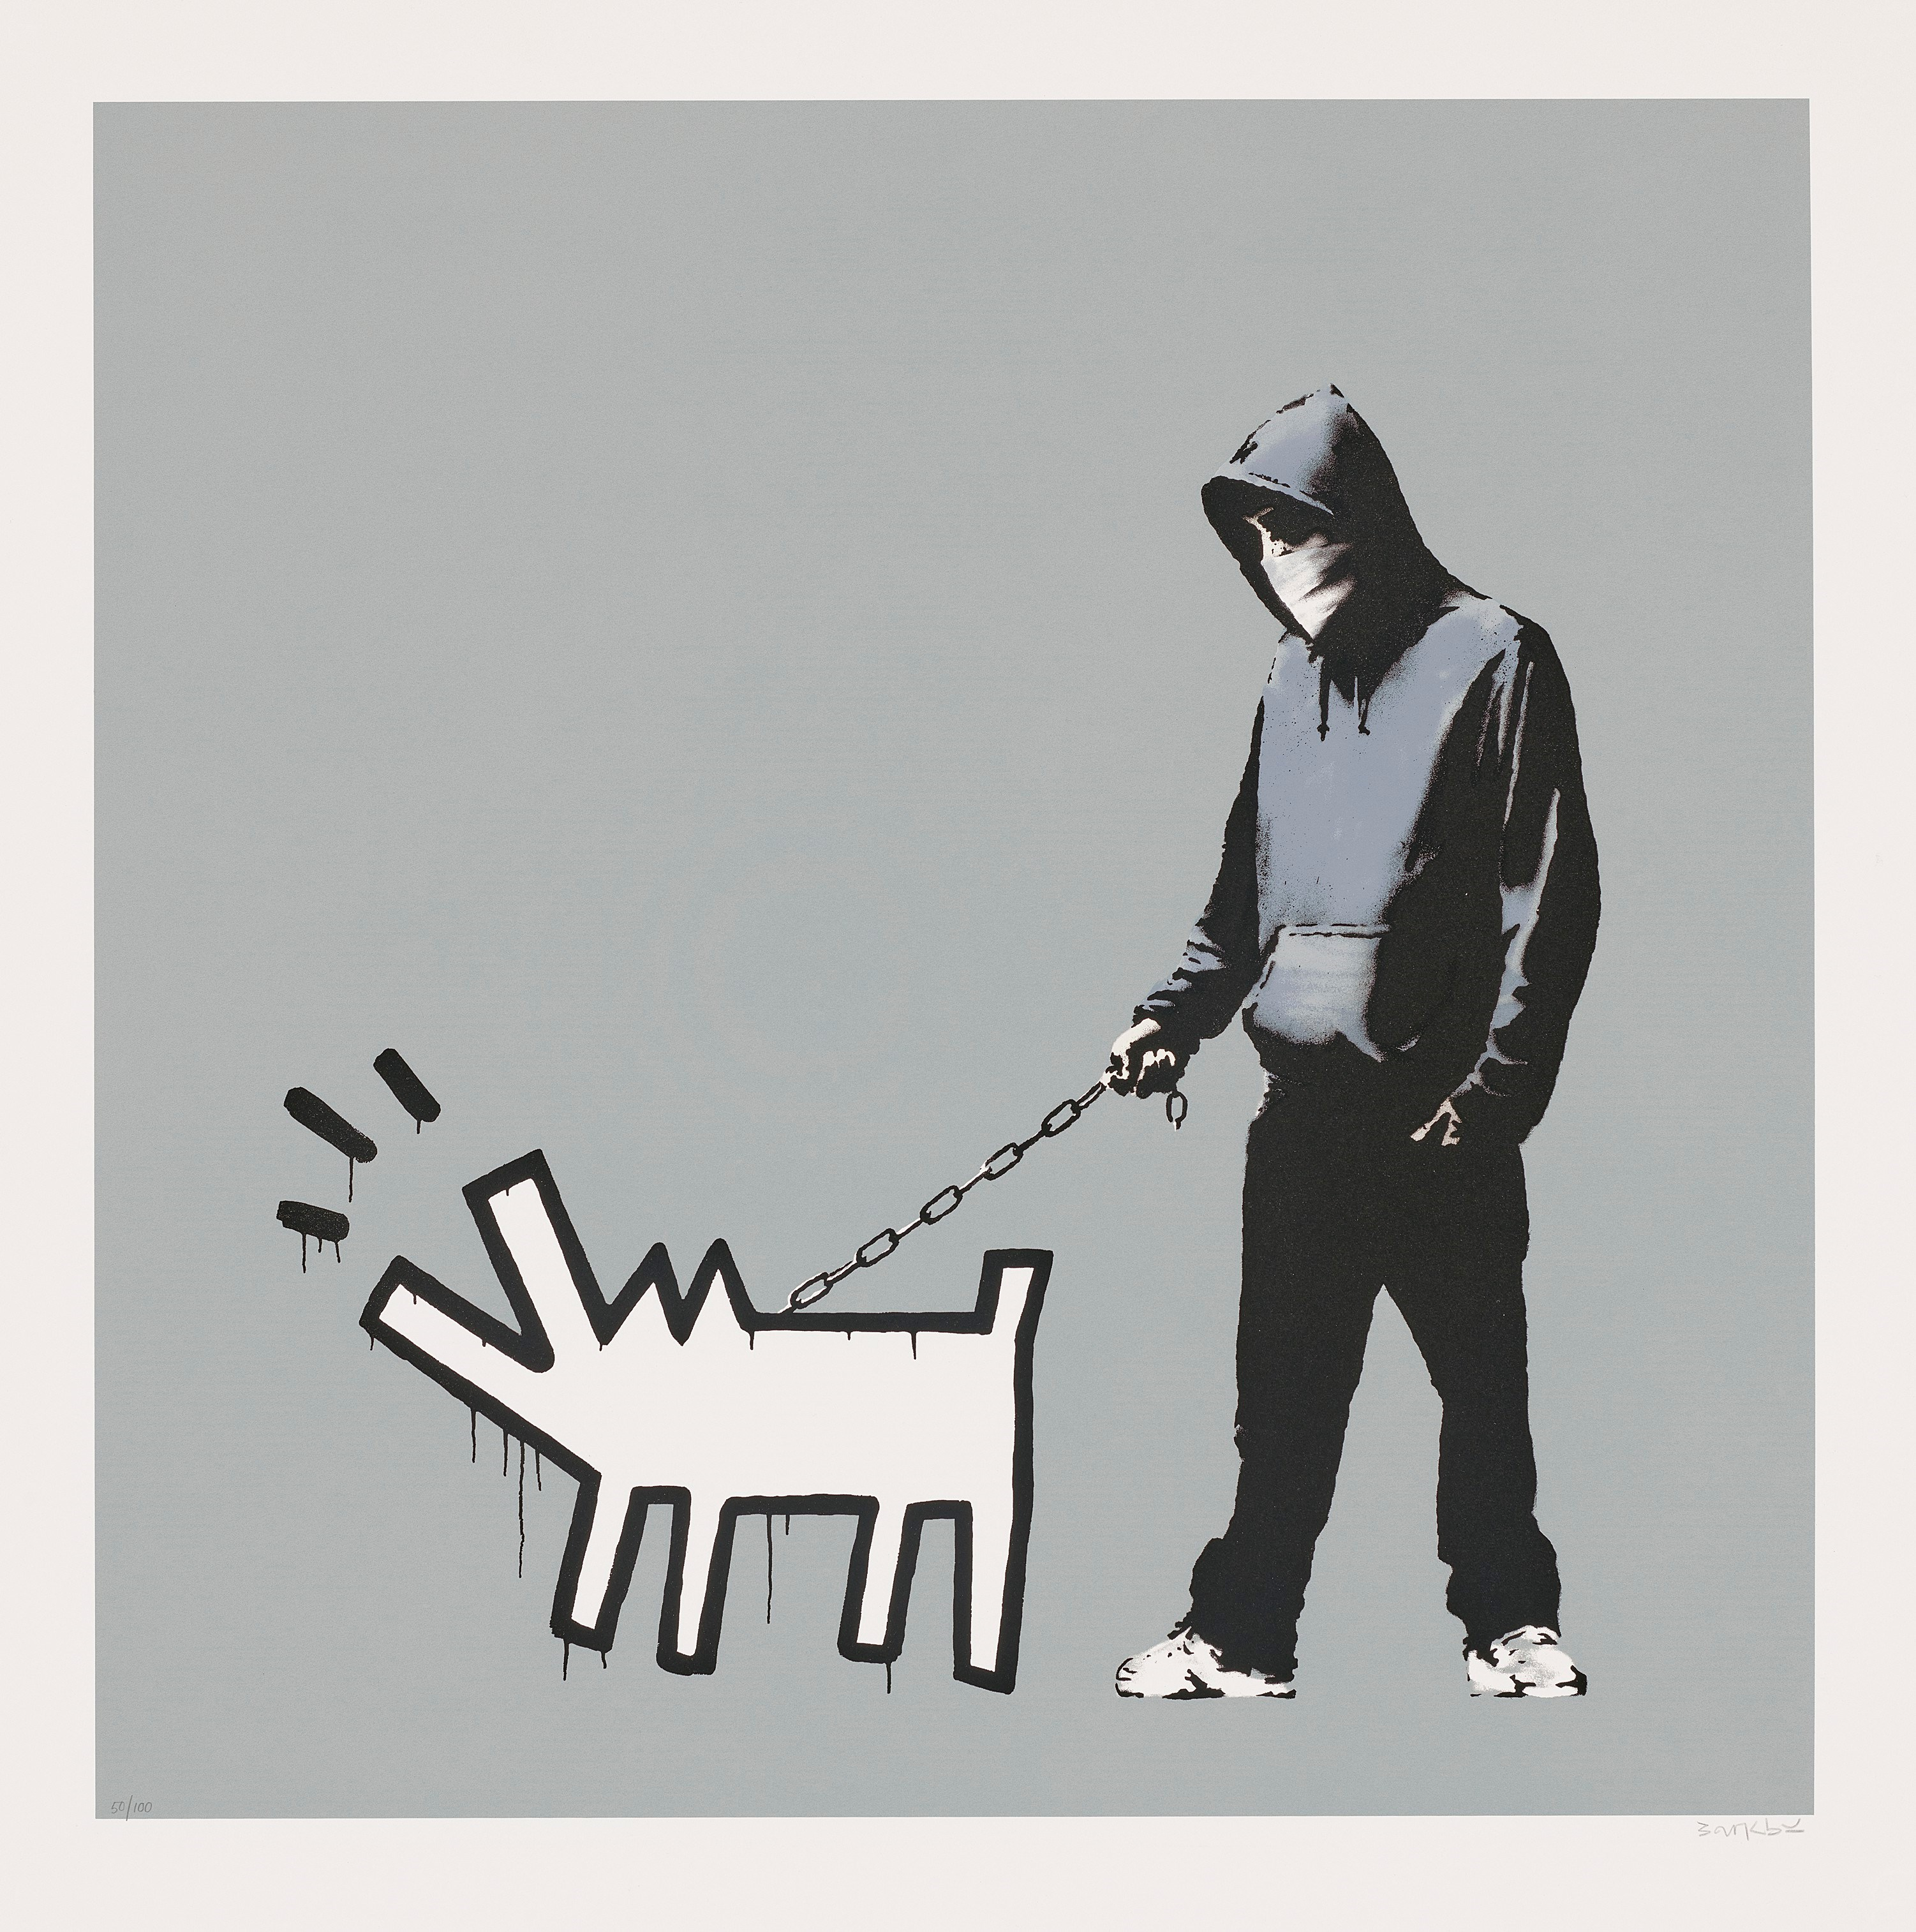 Banksy, Choose Your Weapon (Grey), 2010. Screenprint in colours. Sheet 700 x 700  mm. Estimate £100,000-150,000. Offered inBanksy I can't believe you morons actually buy this sht, 9-23 September 2021, Online